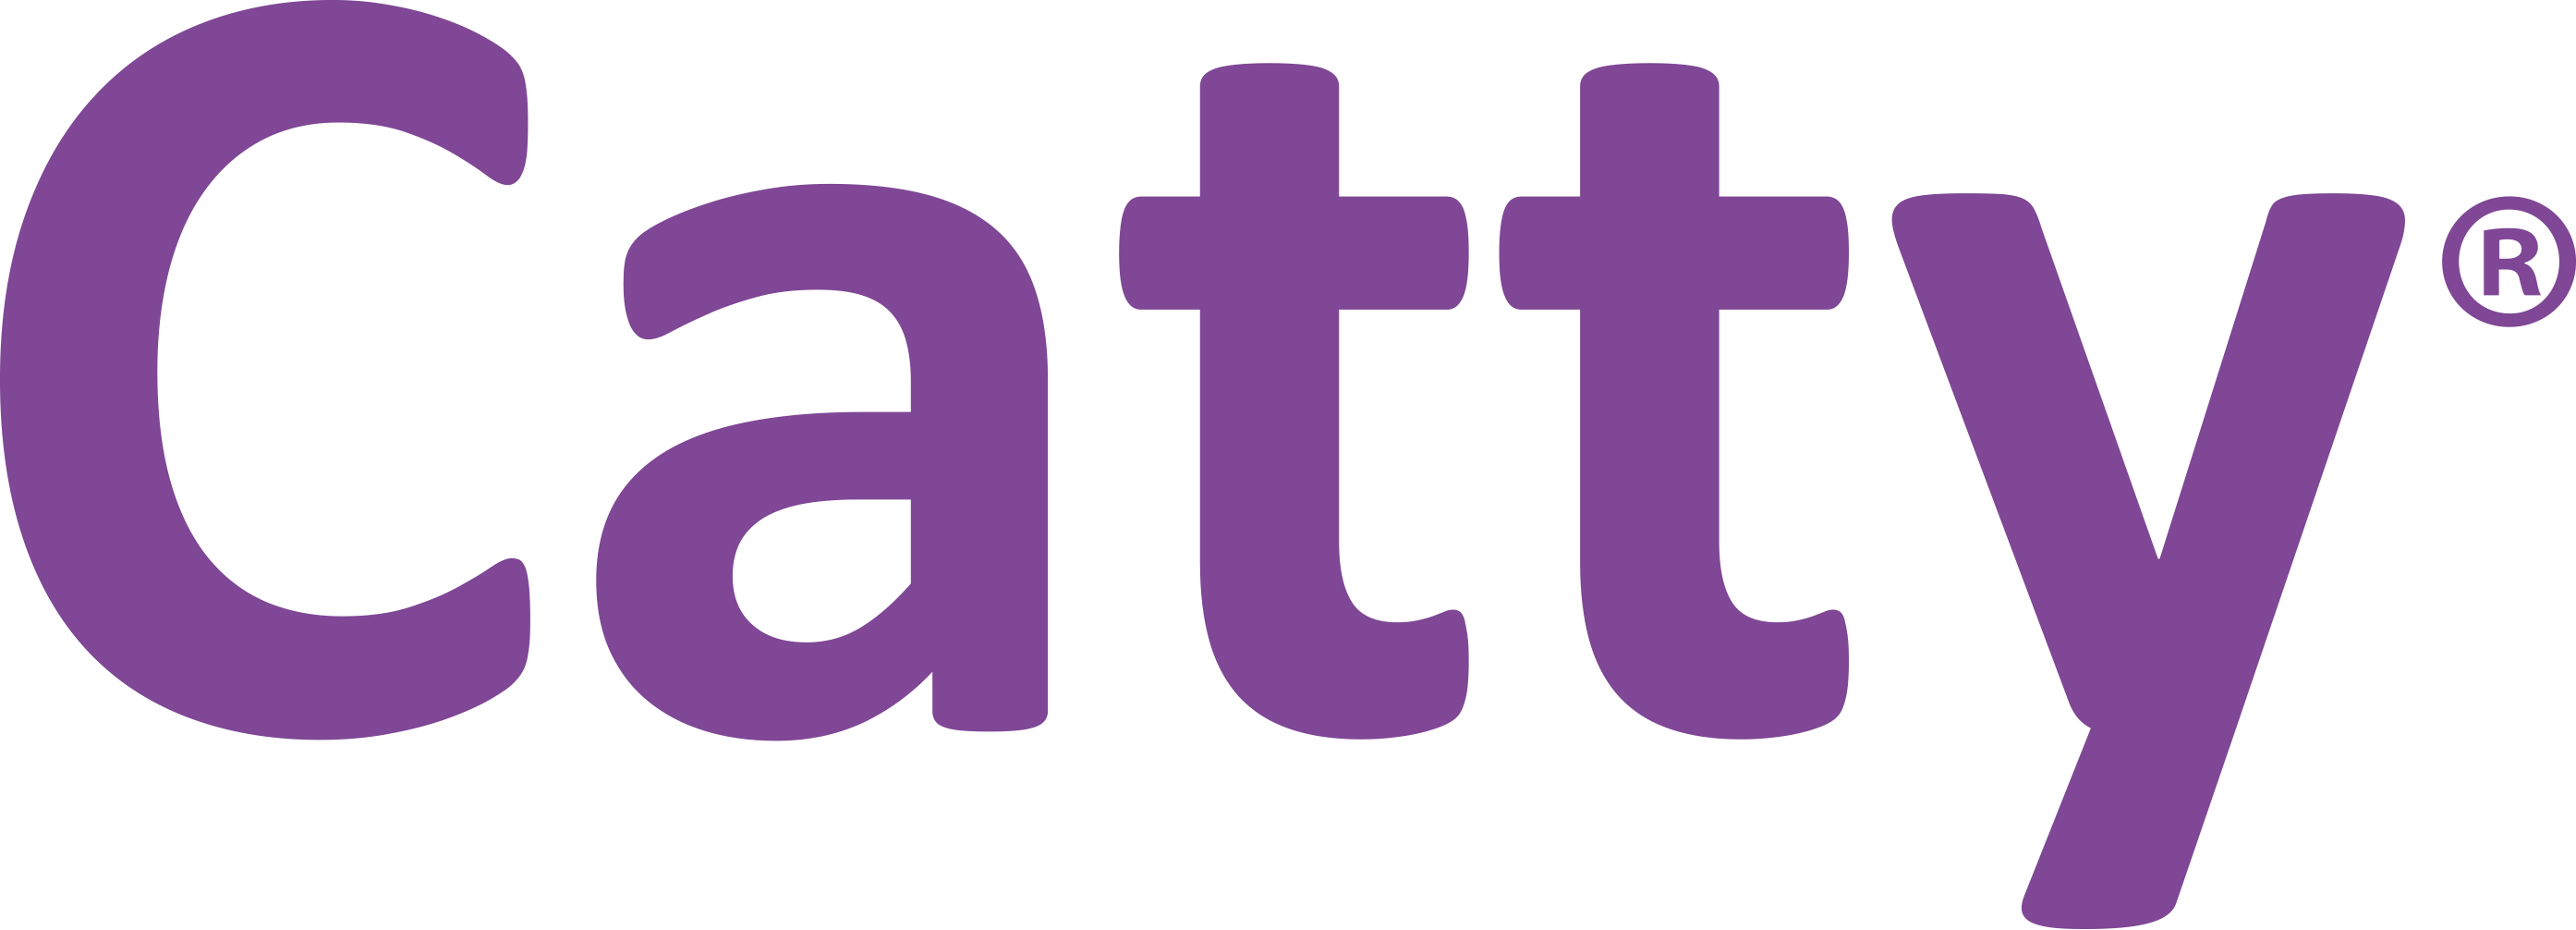 catty logo.png (78 KB)